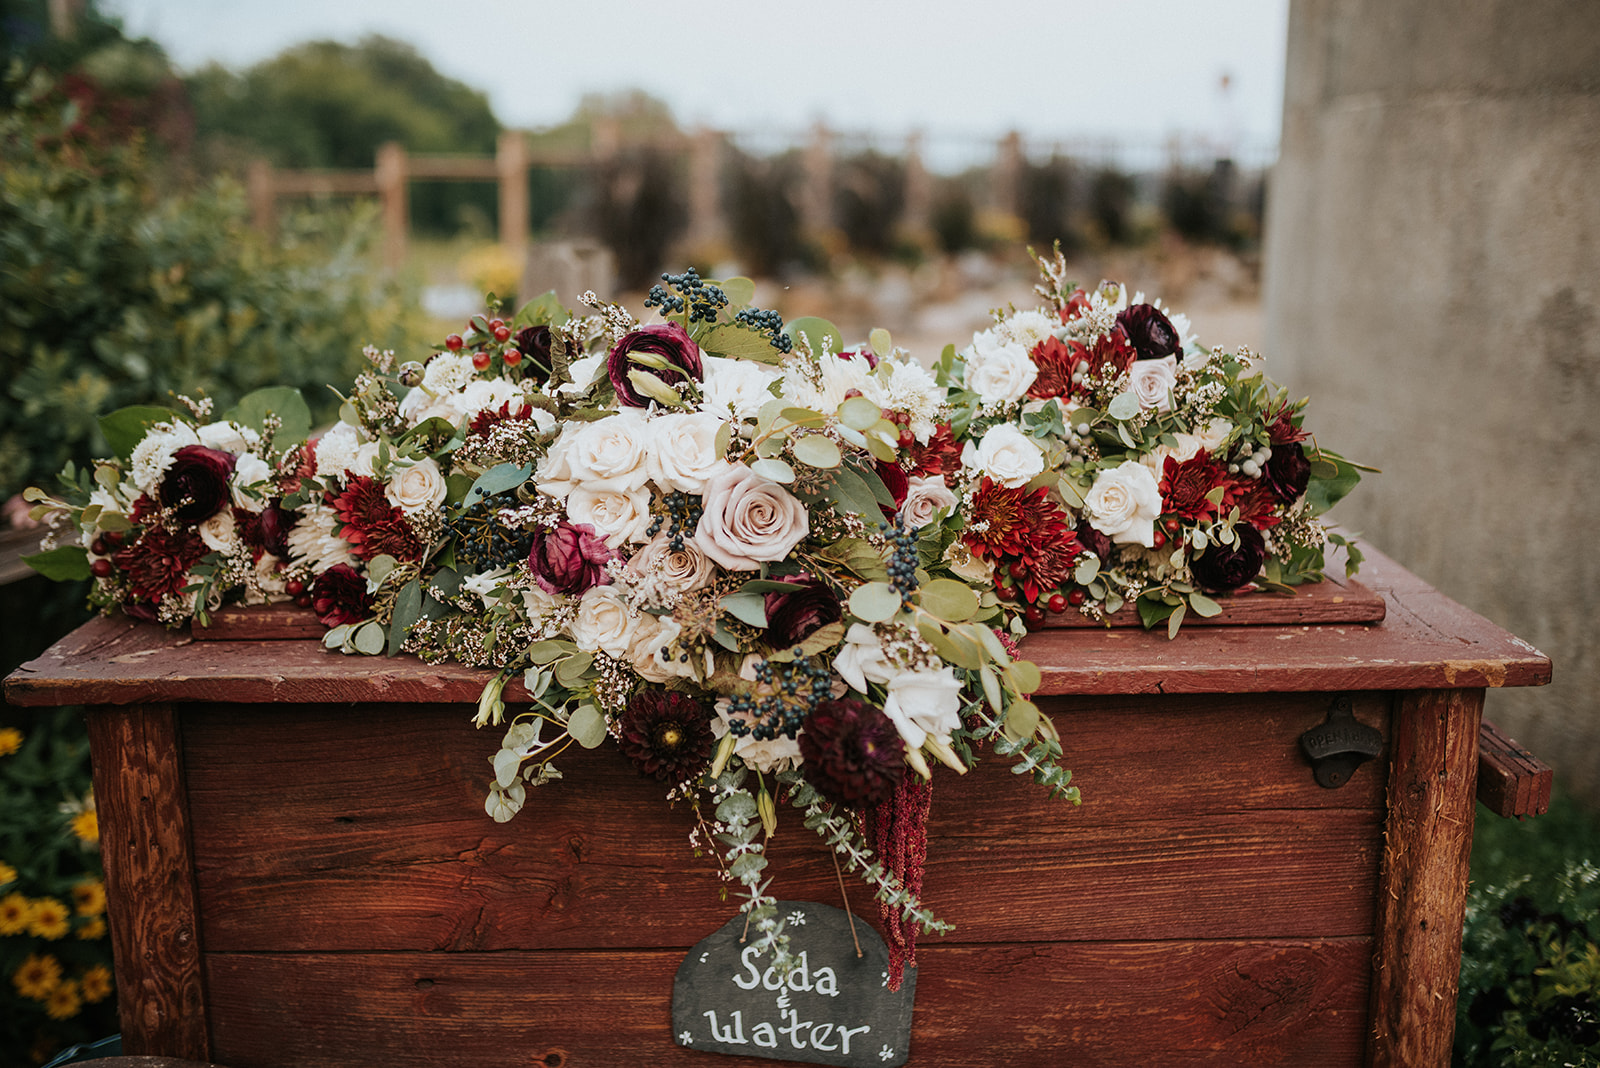 overthevineswisconsinwedding_1249.jpg